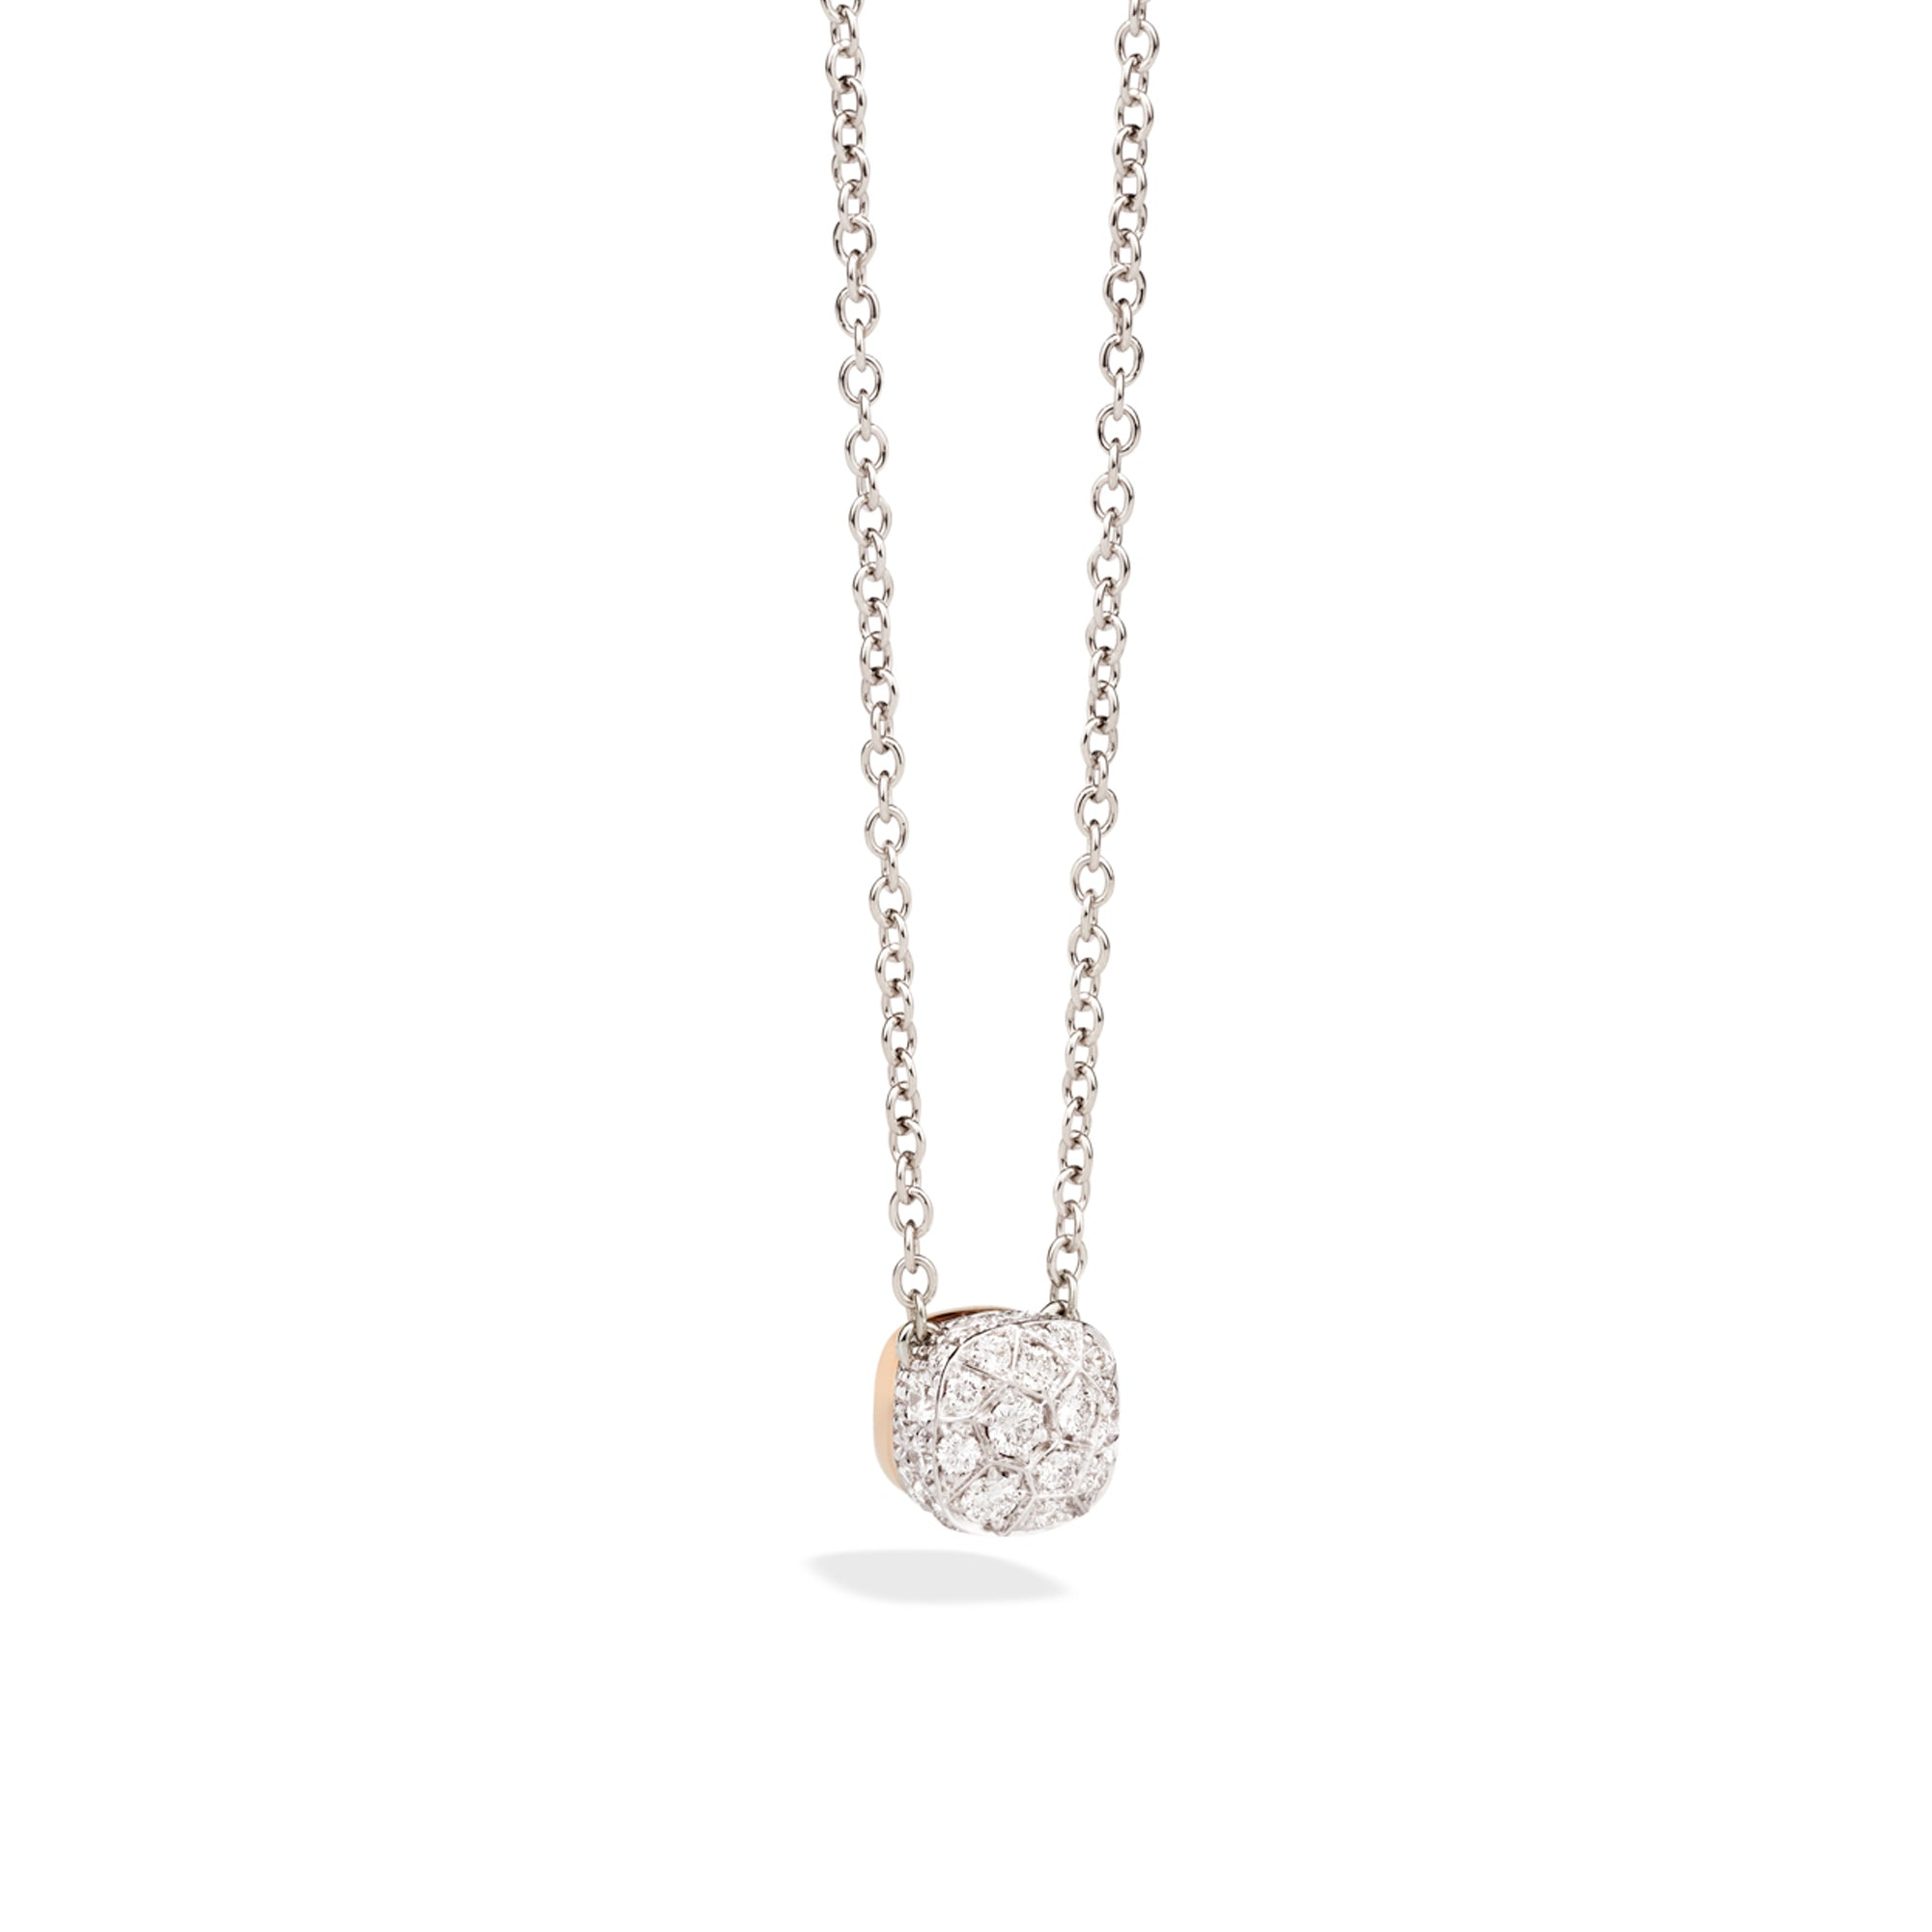 Nudo Necklace with Petit Pendant in 18k Rose and White Gold and Pave Diamonds - Orsini Jewellers NZ